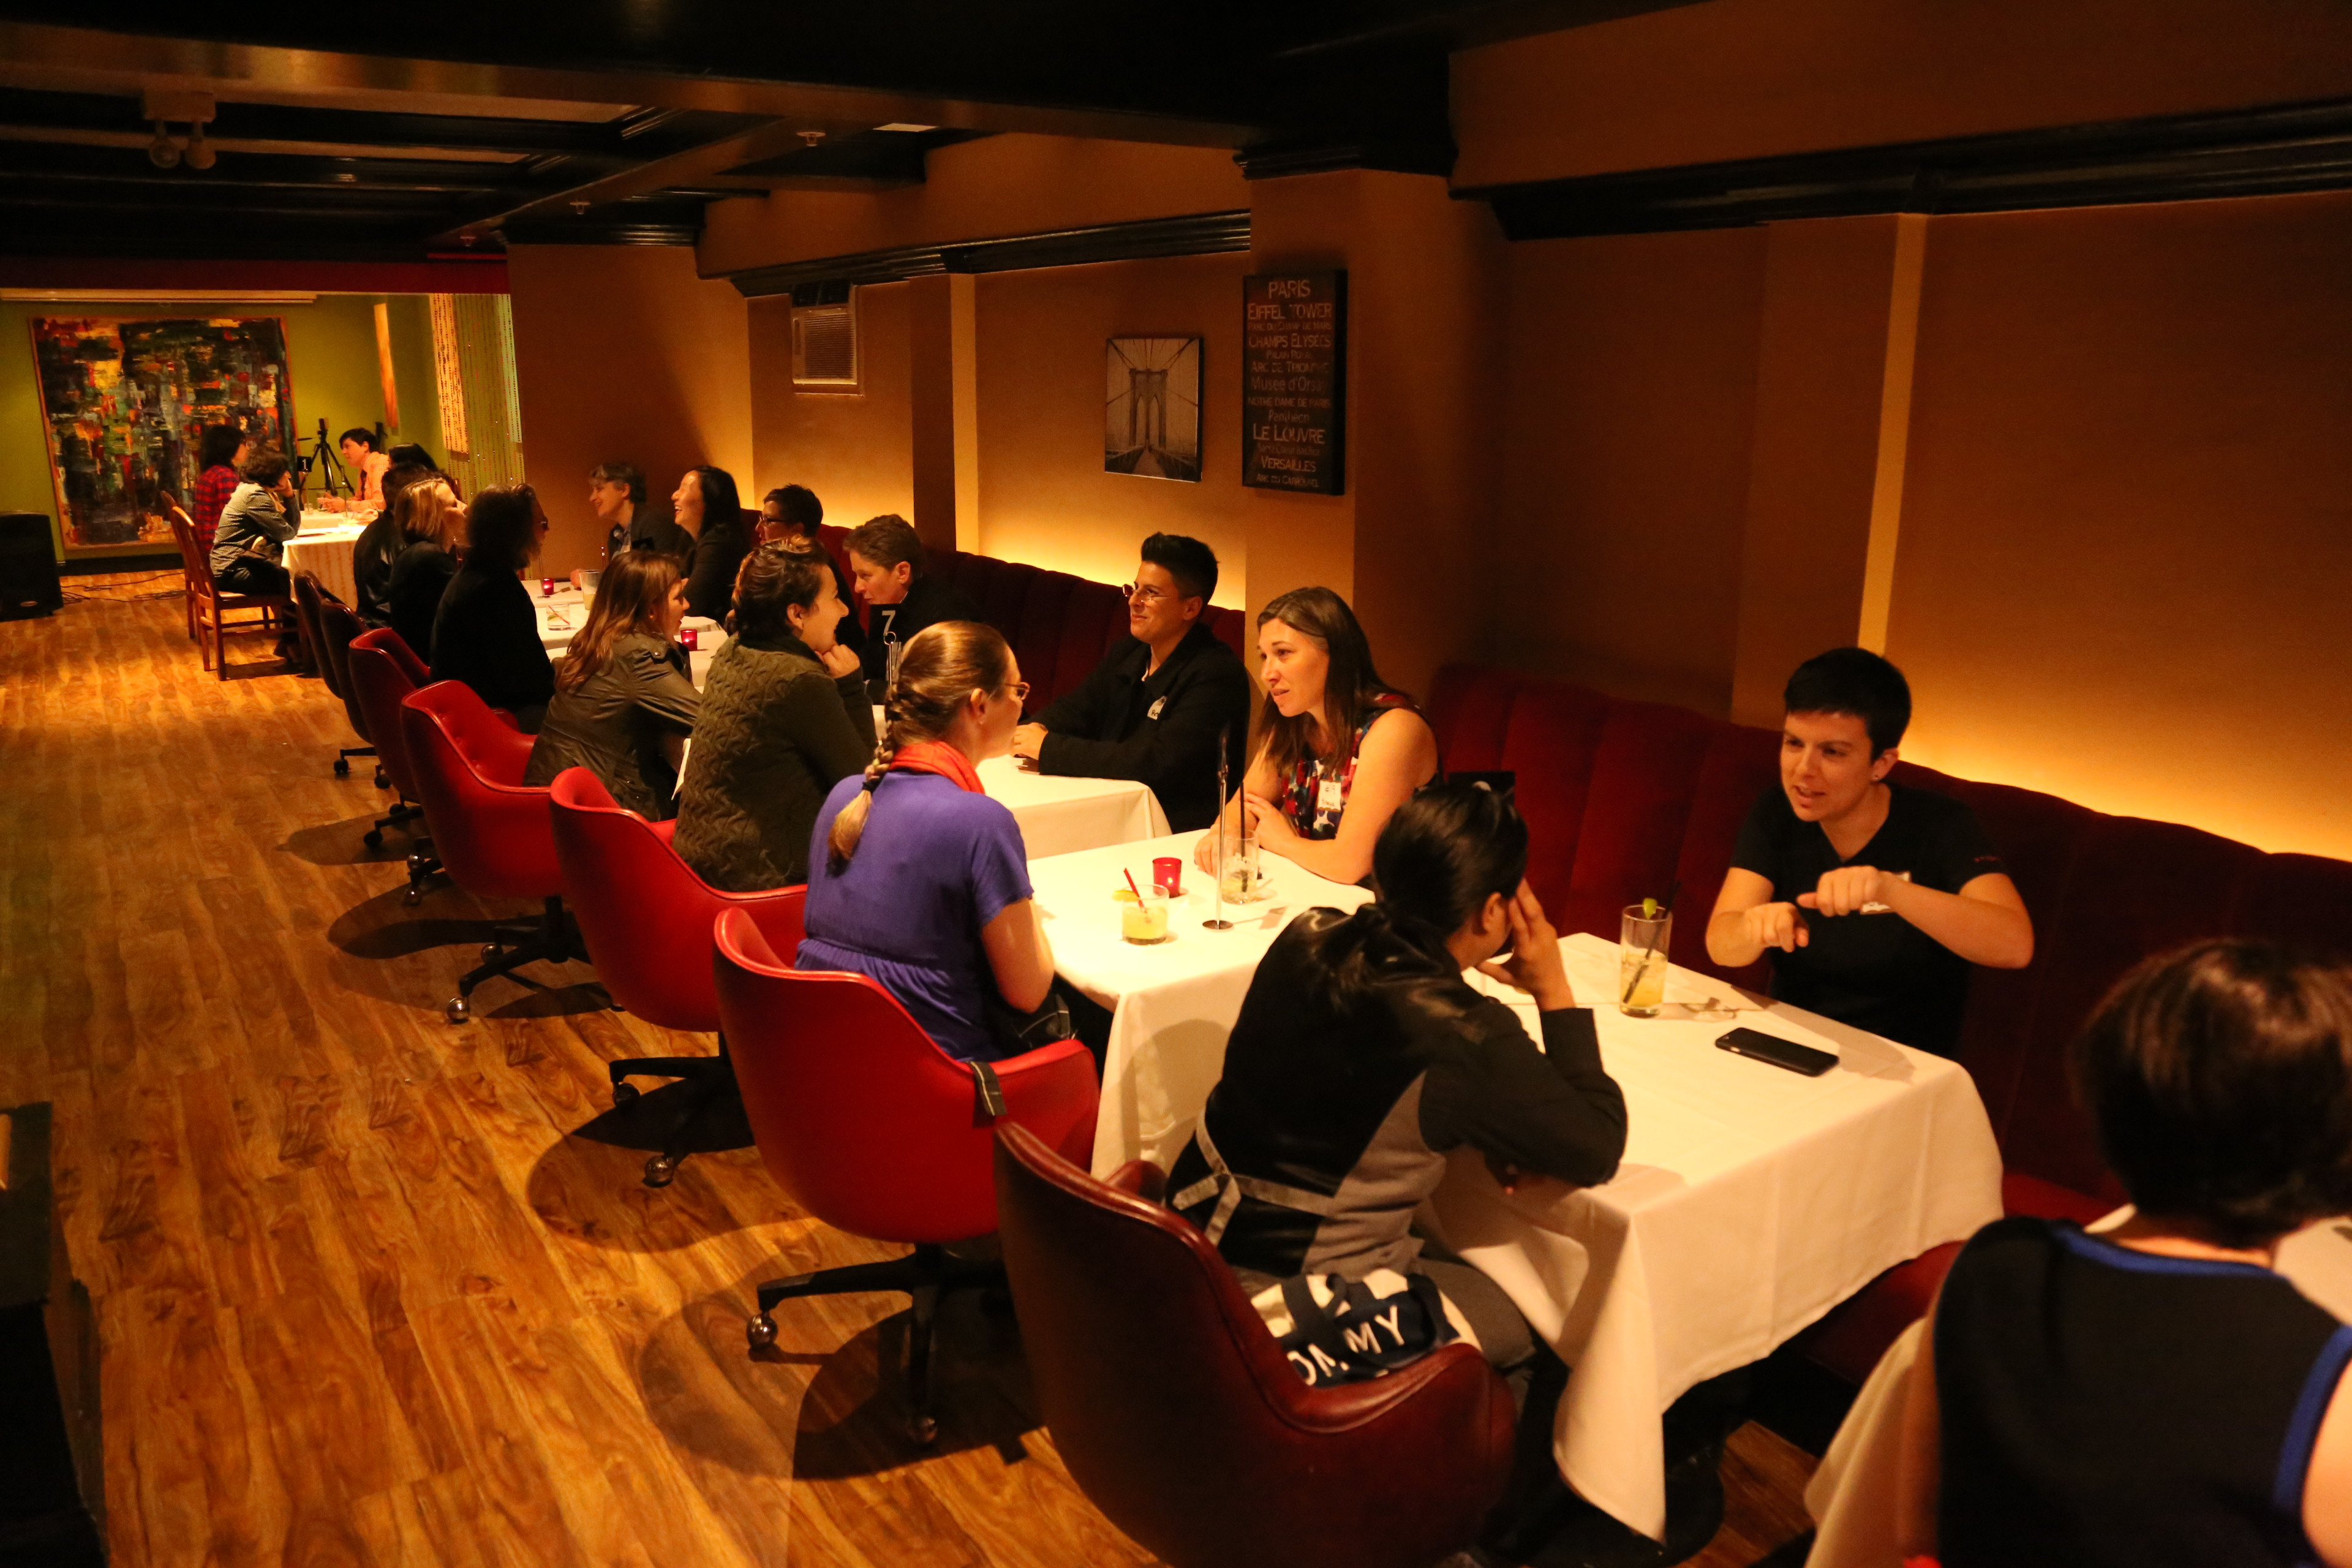 San francisco speed dating events